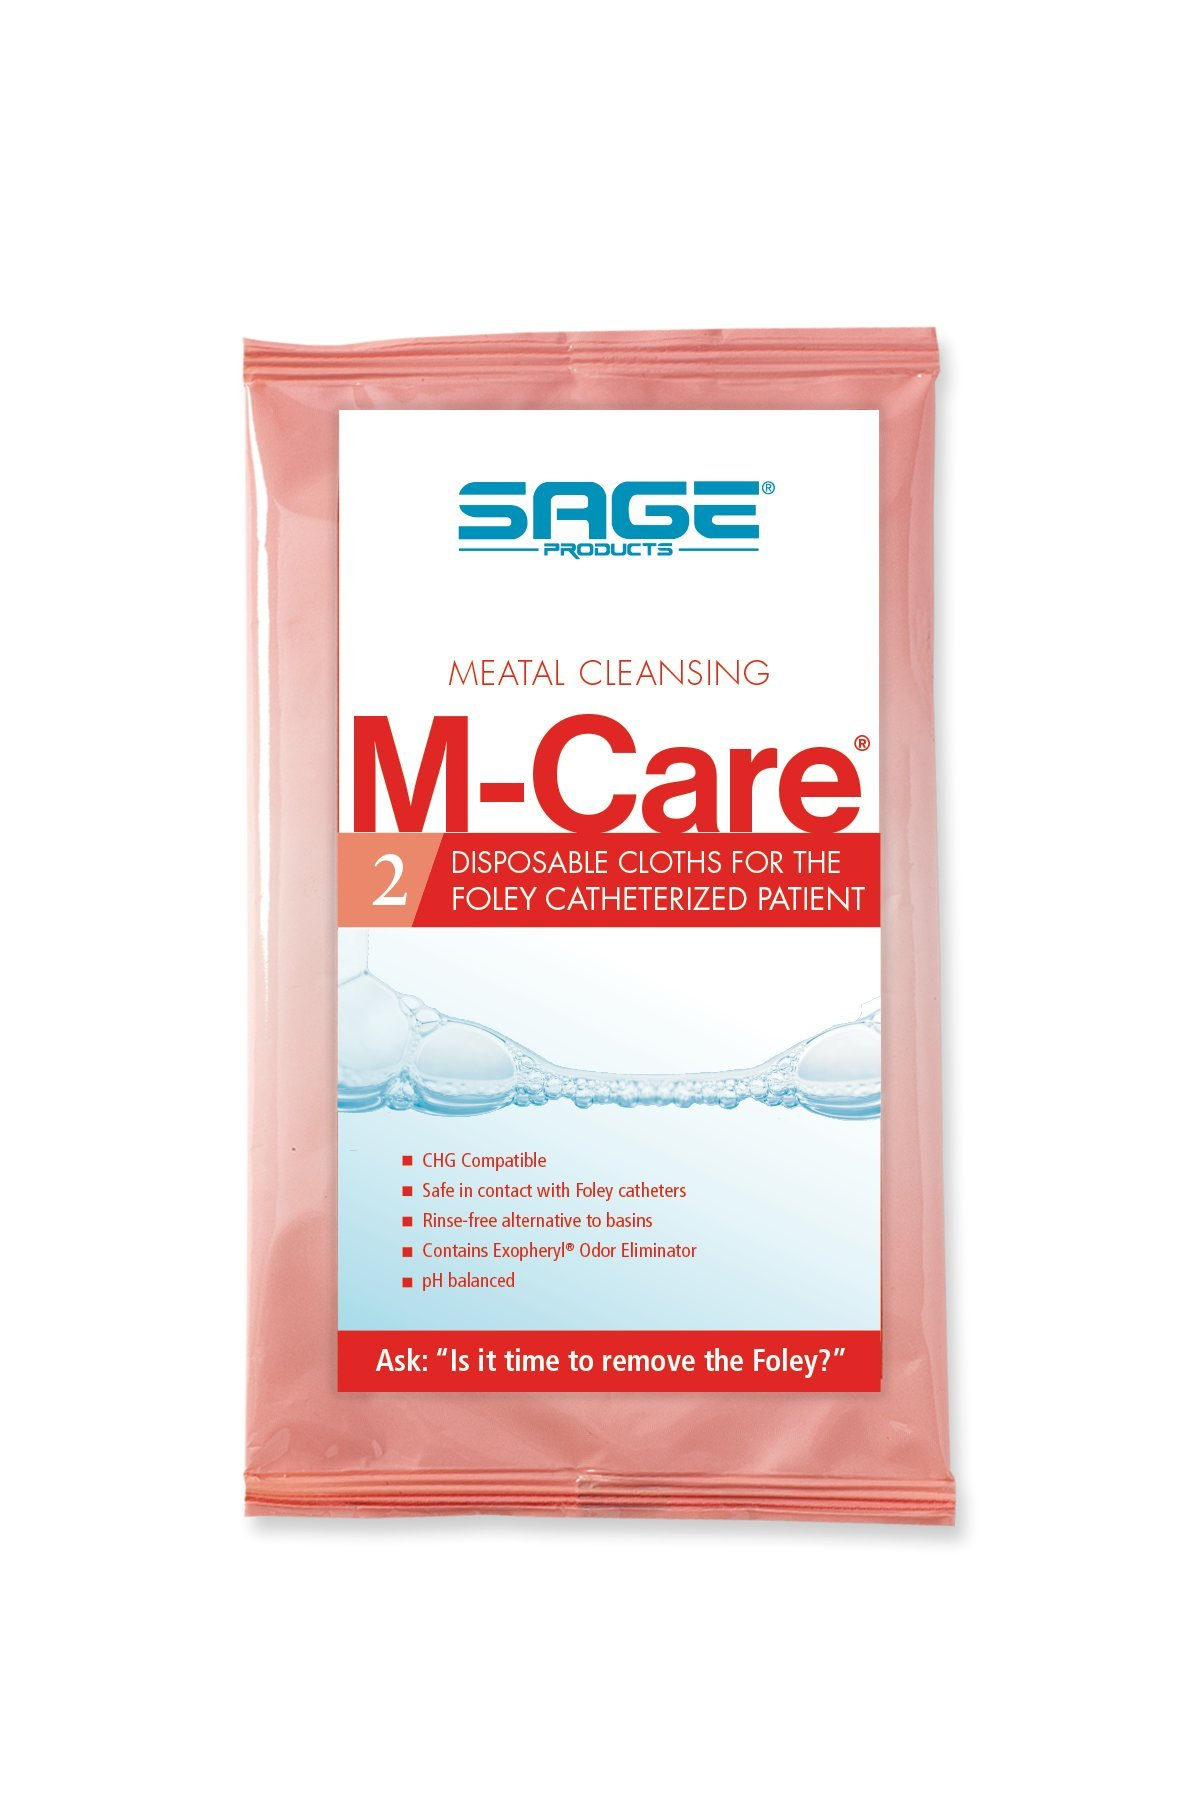 M-Care Meatal Cleansing Cloths - Case (168 packages) by Sage Products